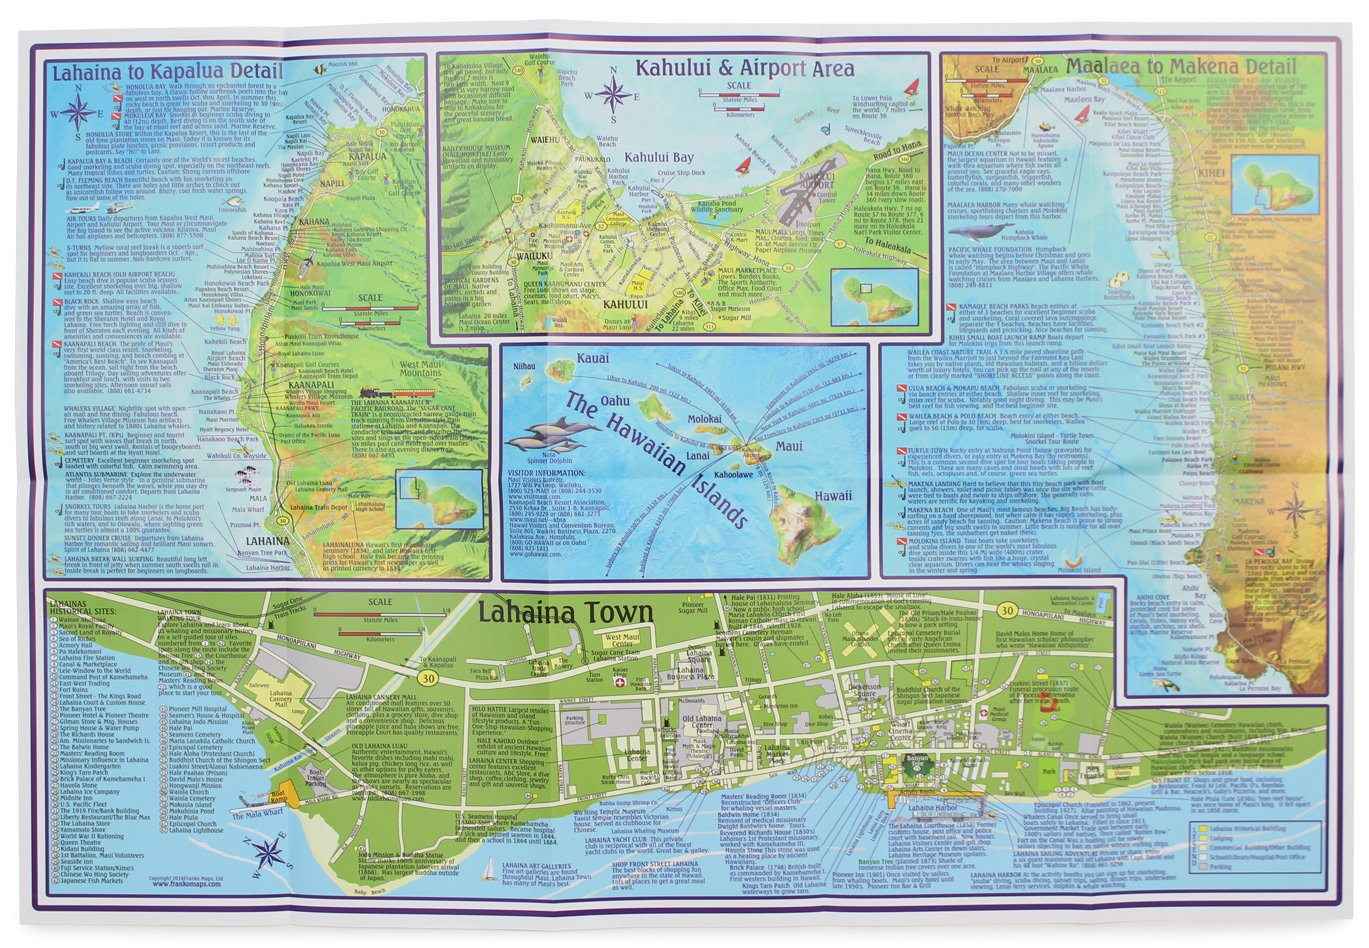 Frankos maui guide map frank m nielsen 9781601901439 amazon frankos maui guide map frank m nielsen 9781601901439 amazon books thecheapjerseys Image collections